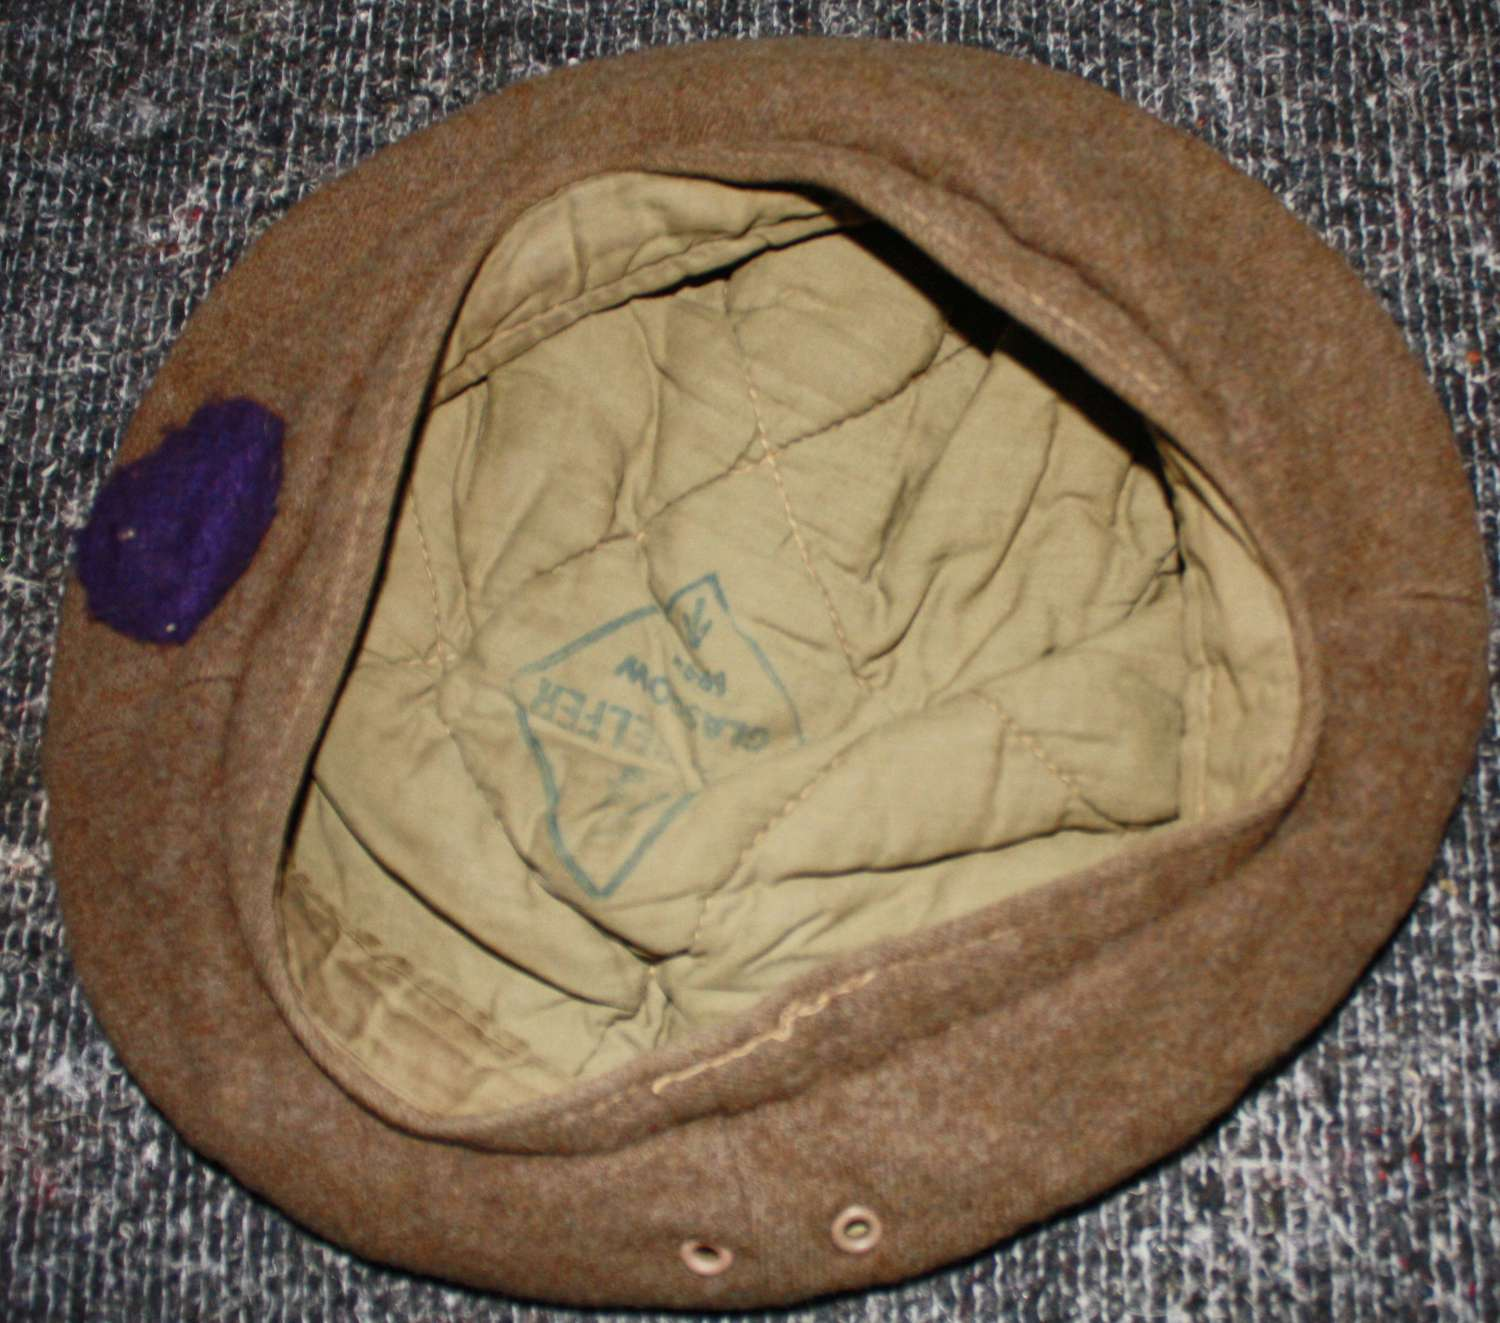 A 1945 DATED LARGE SIZE 7 1/4 GS BERET